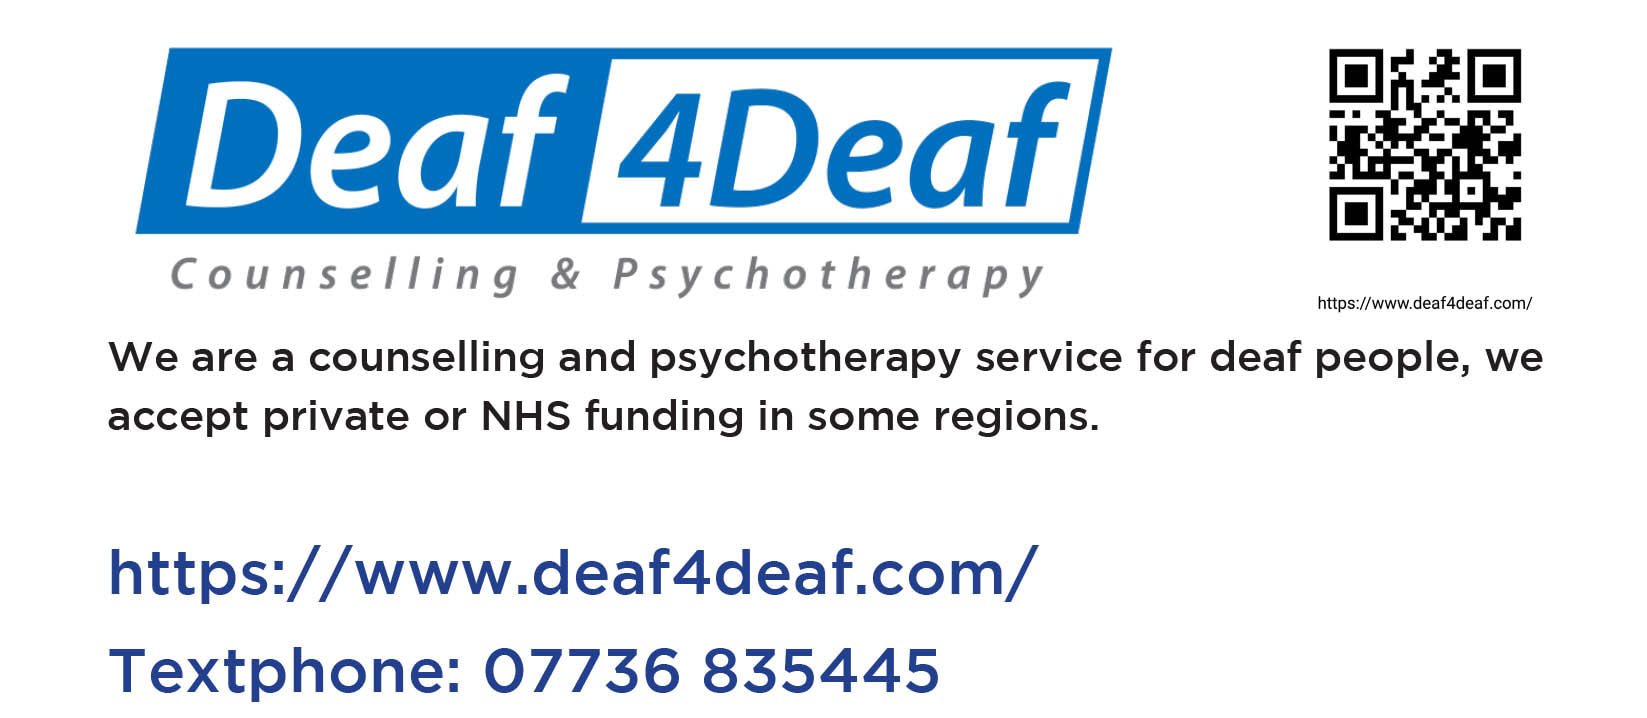 Banner linking to the Deaf 4 Deaf counselling service